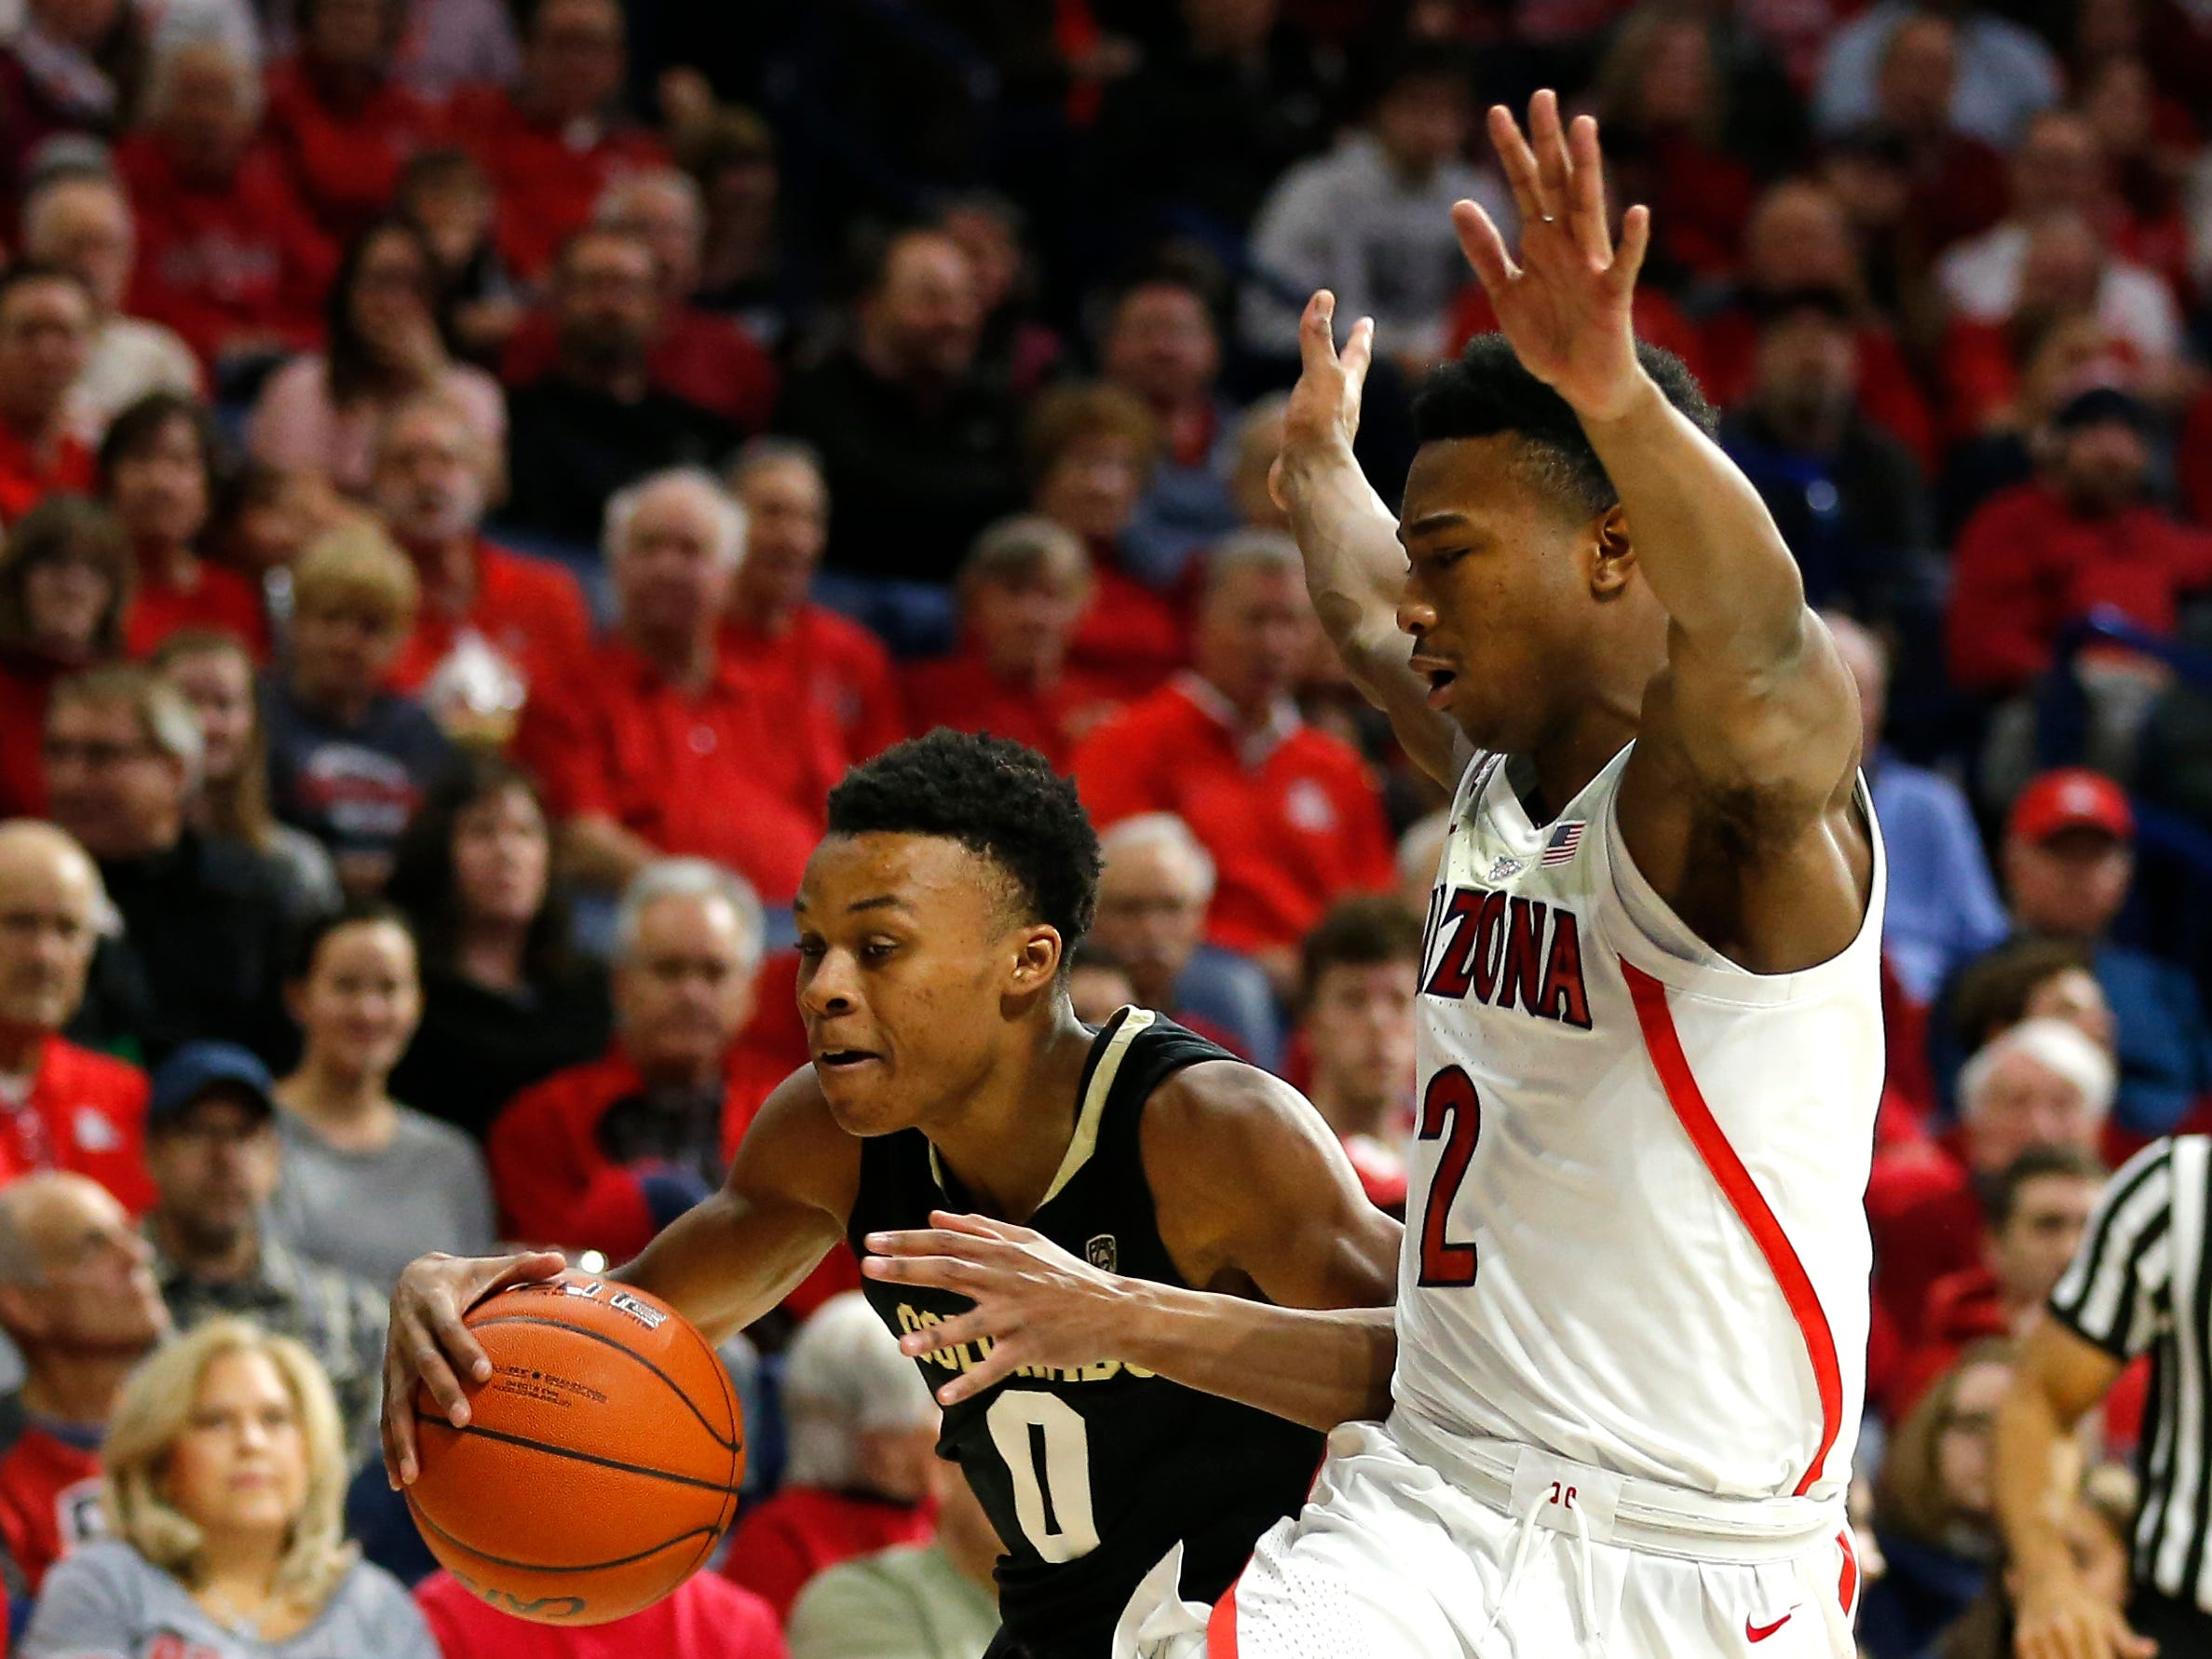 Colorado guard Shane Gatling (0) drives on Arizona guard Brandon Williams in the first half during an NCAA college basketball game, Thursday, Jan. 3, 2019, in Tucson, Ariz. (AP Photo/Rick Scuteri)